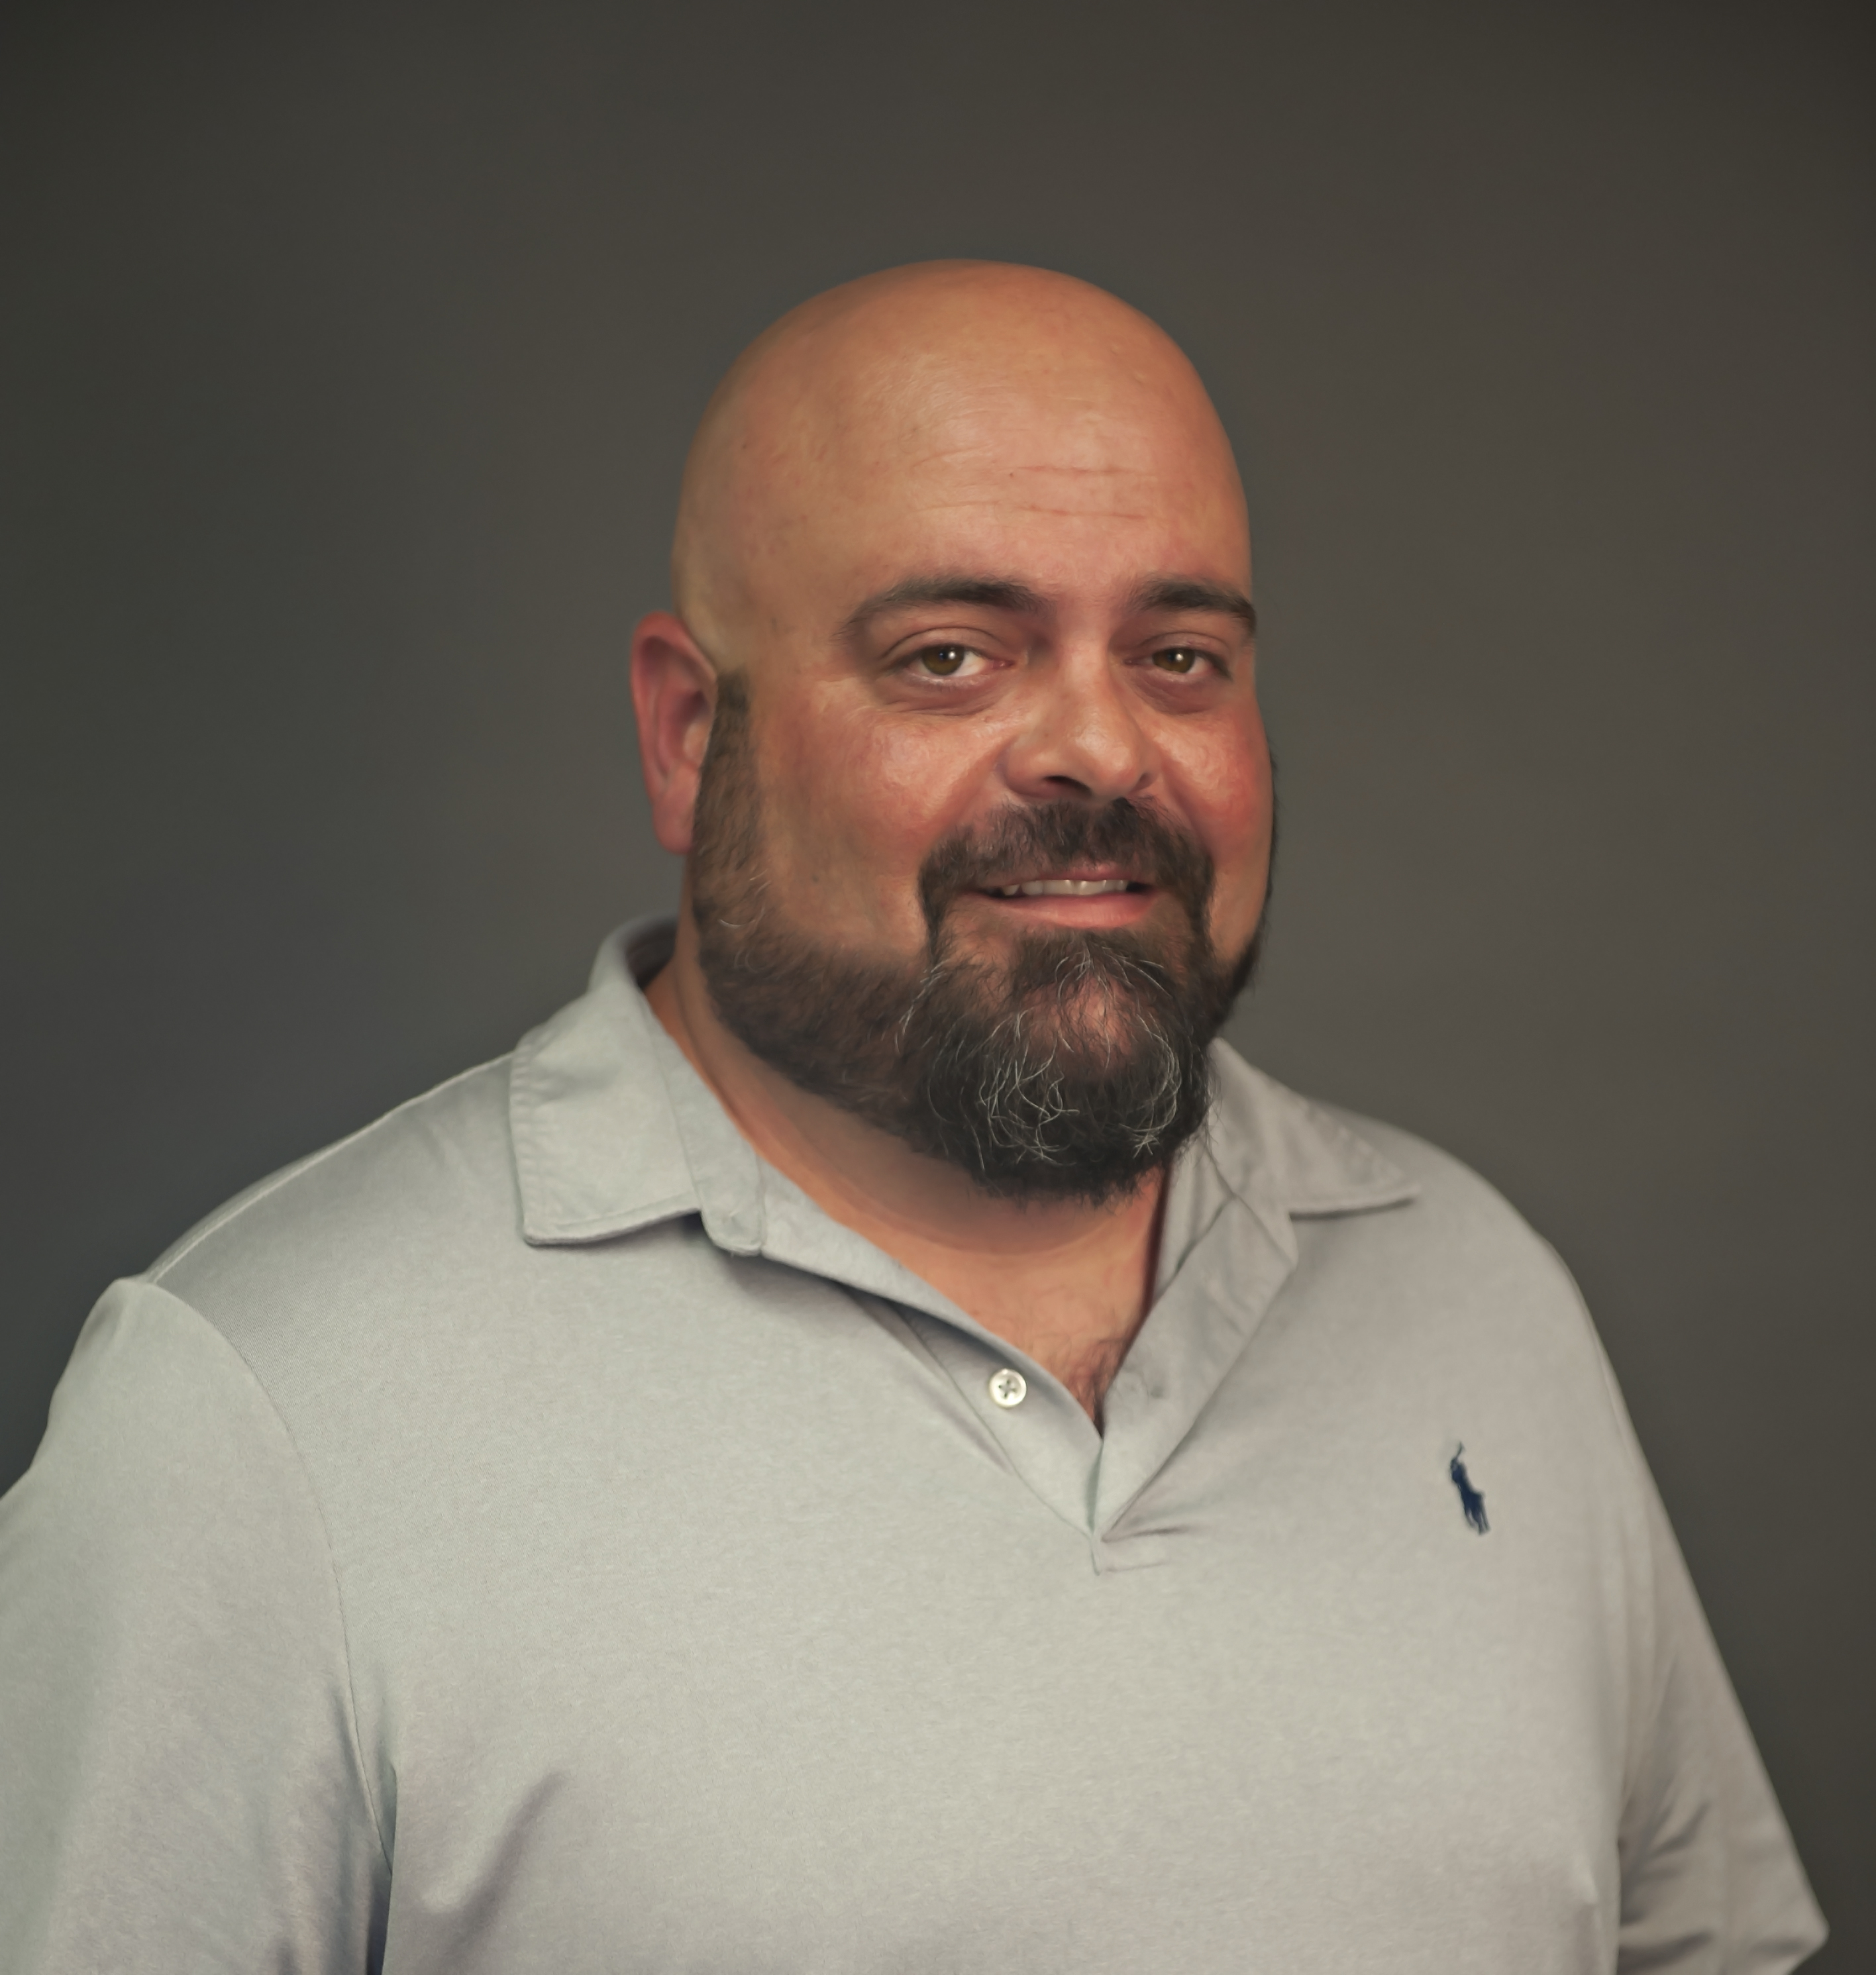 Our Team - Ryan Ford